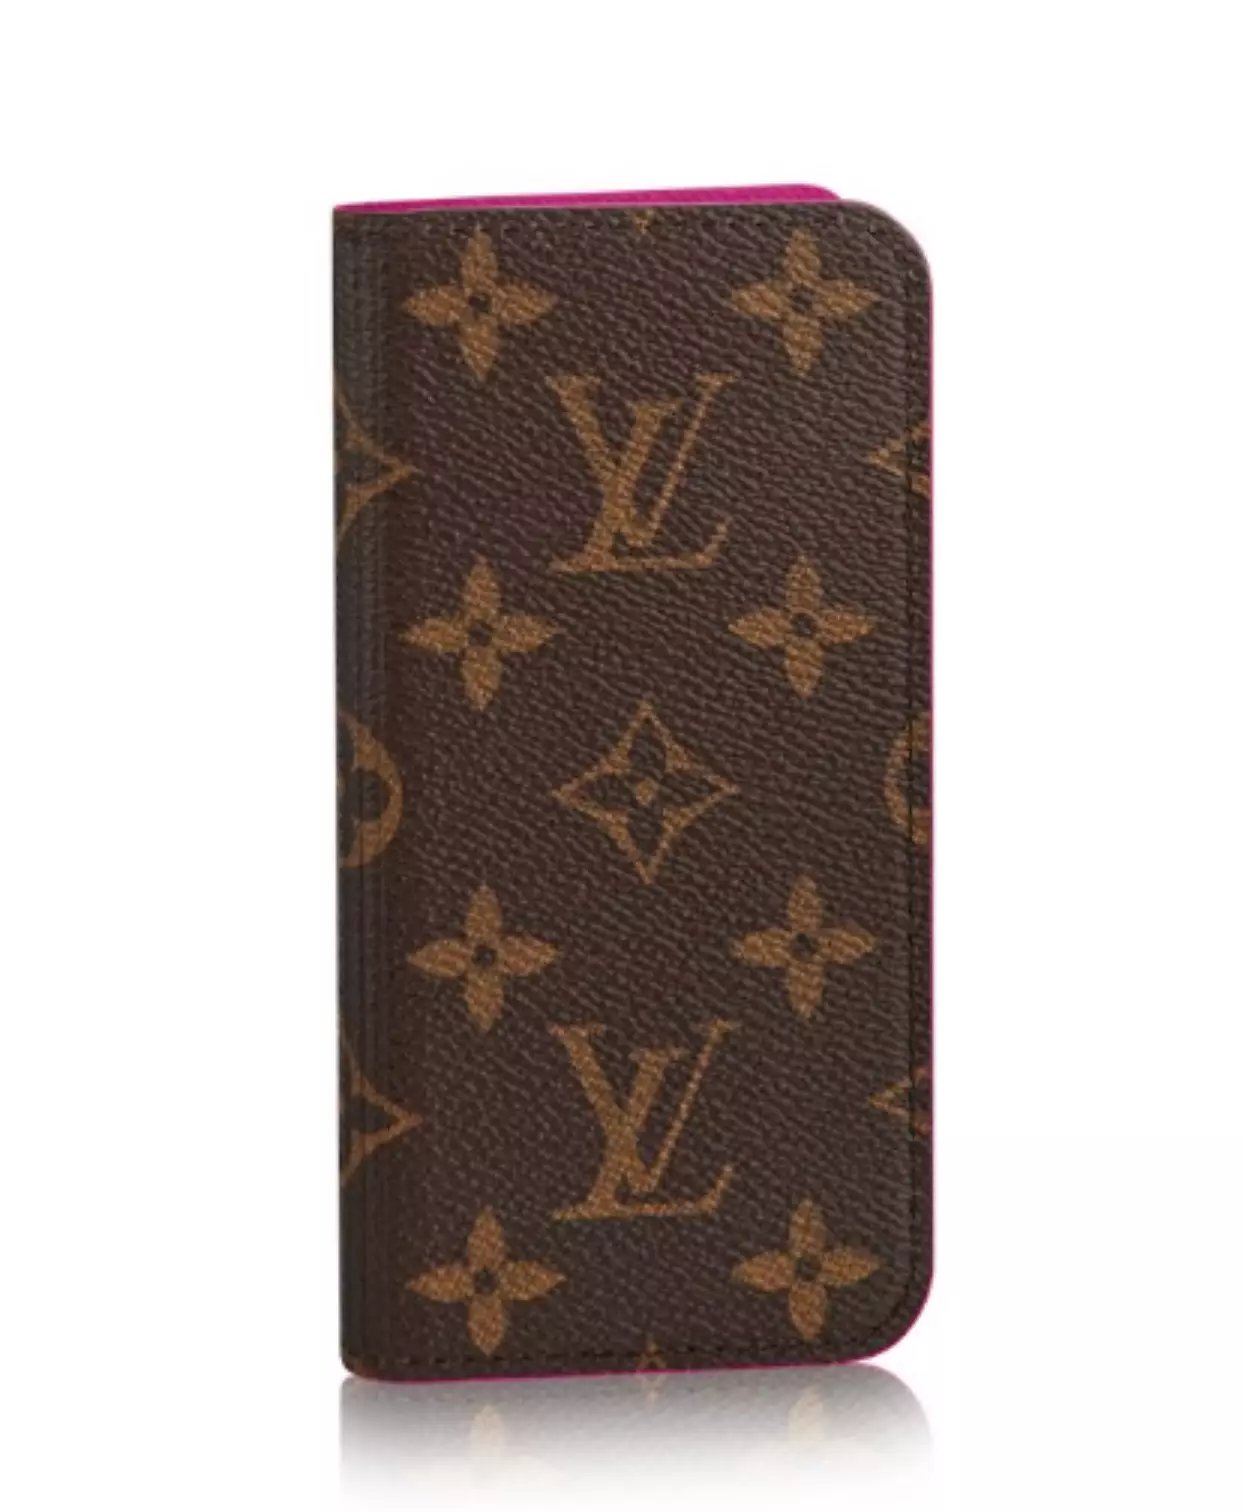 beste iphone hülle iphone filzhülle Louis Vuitton iphone 8 Plus hüllen iphone 8 Plus hülle 8 Pluslbst designen smartphone hüllen test iphone 8 Plus lederetui design hülle iphone 8 Plus htc handy hüllen iphone 8 Plus ganzkörper hülle